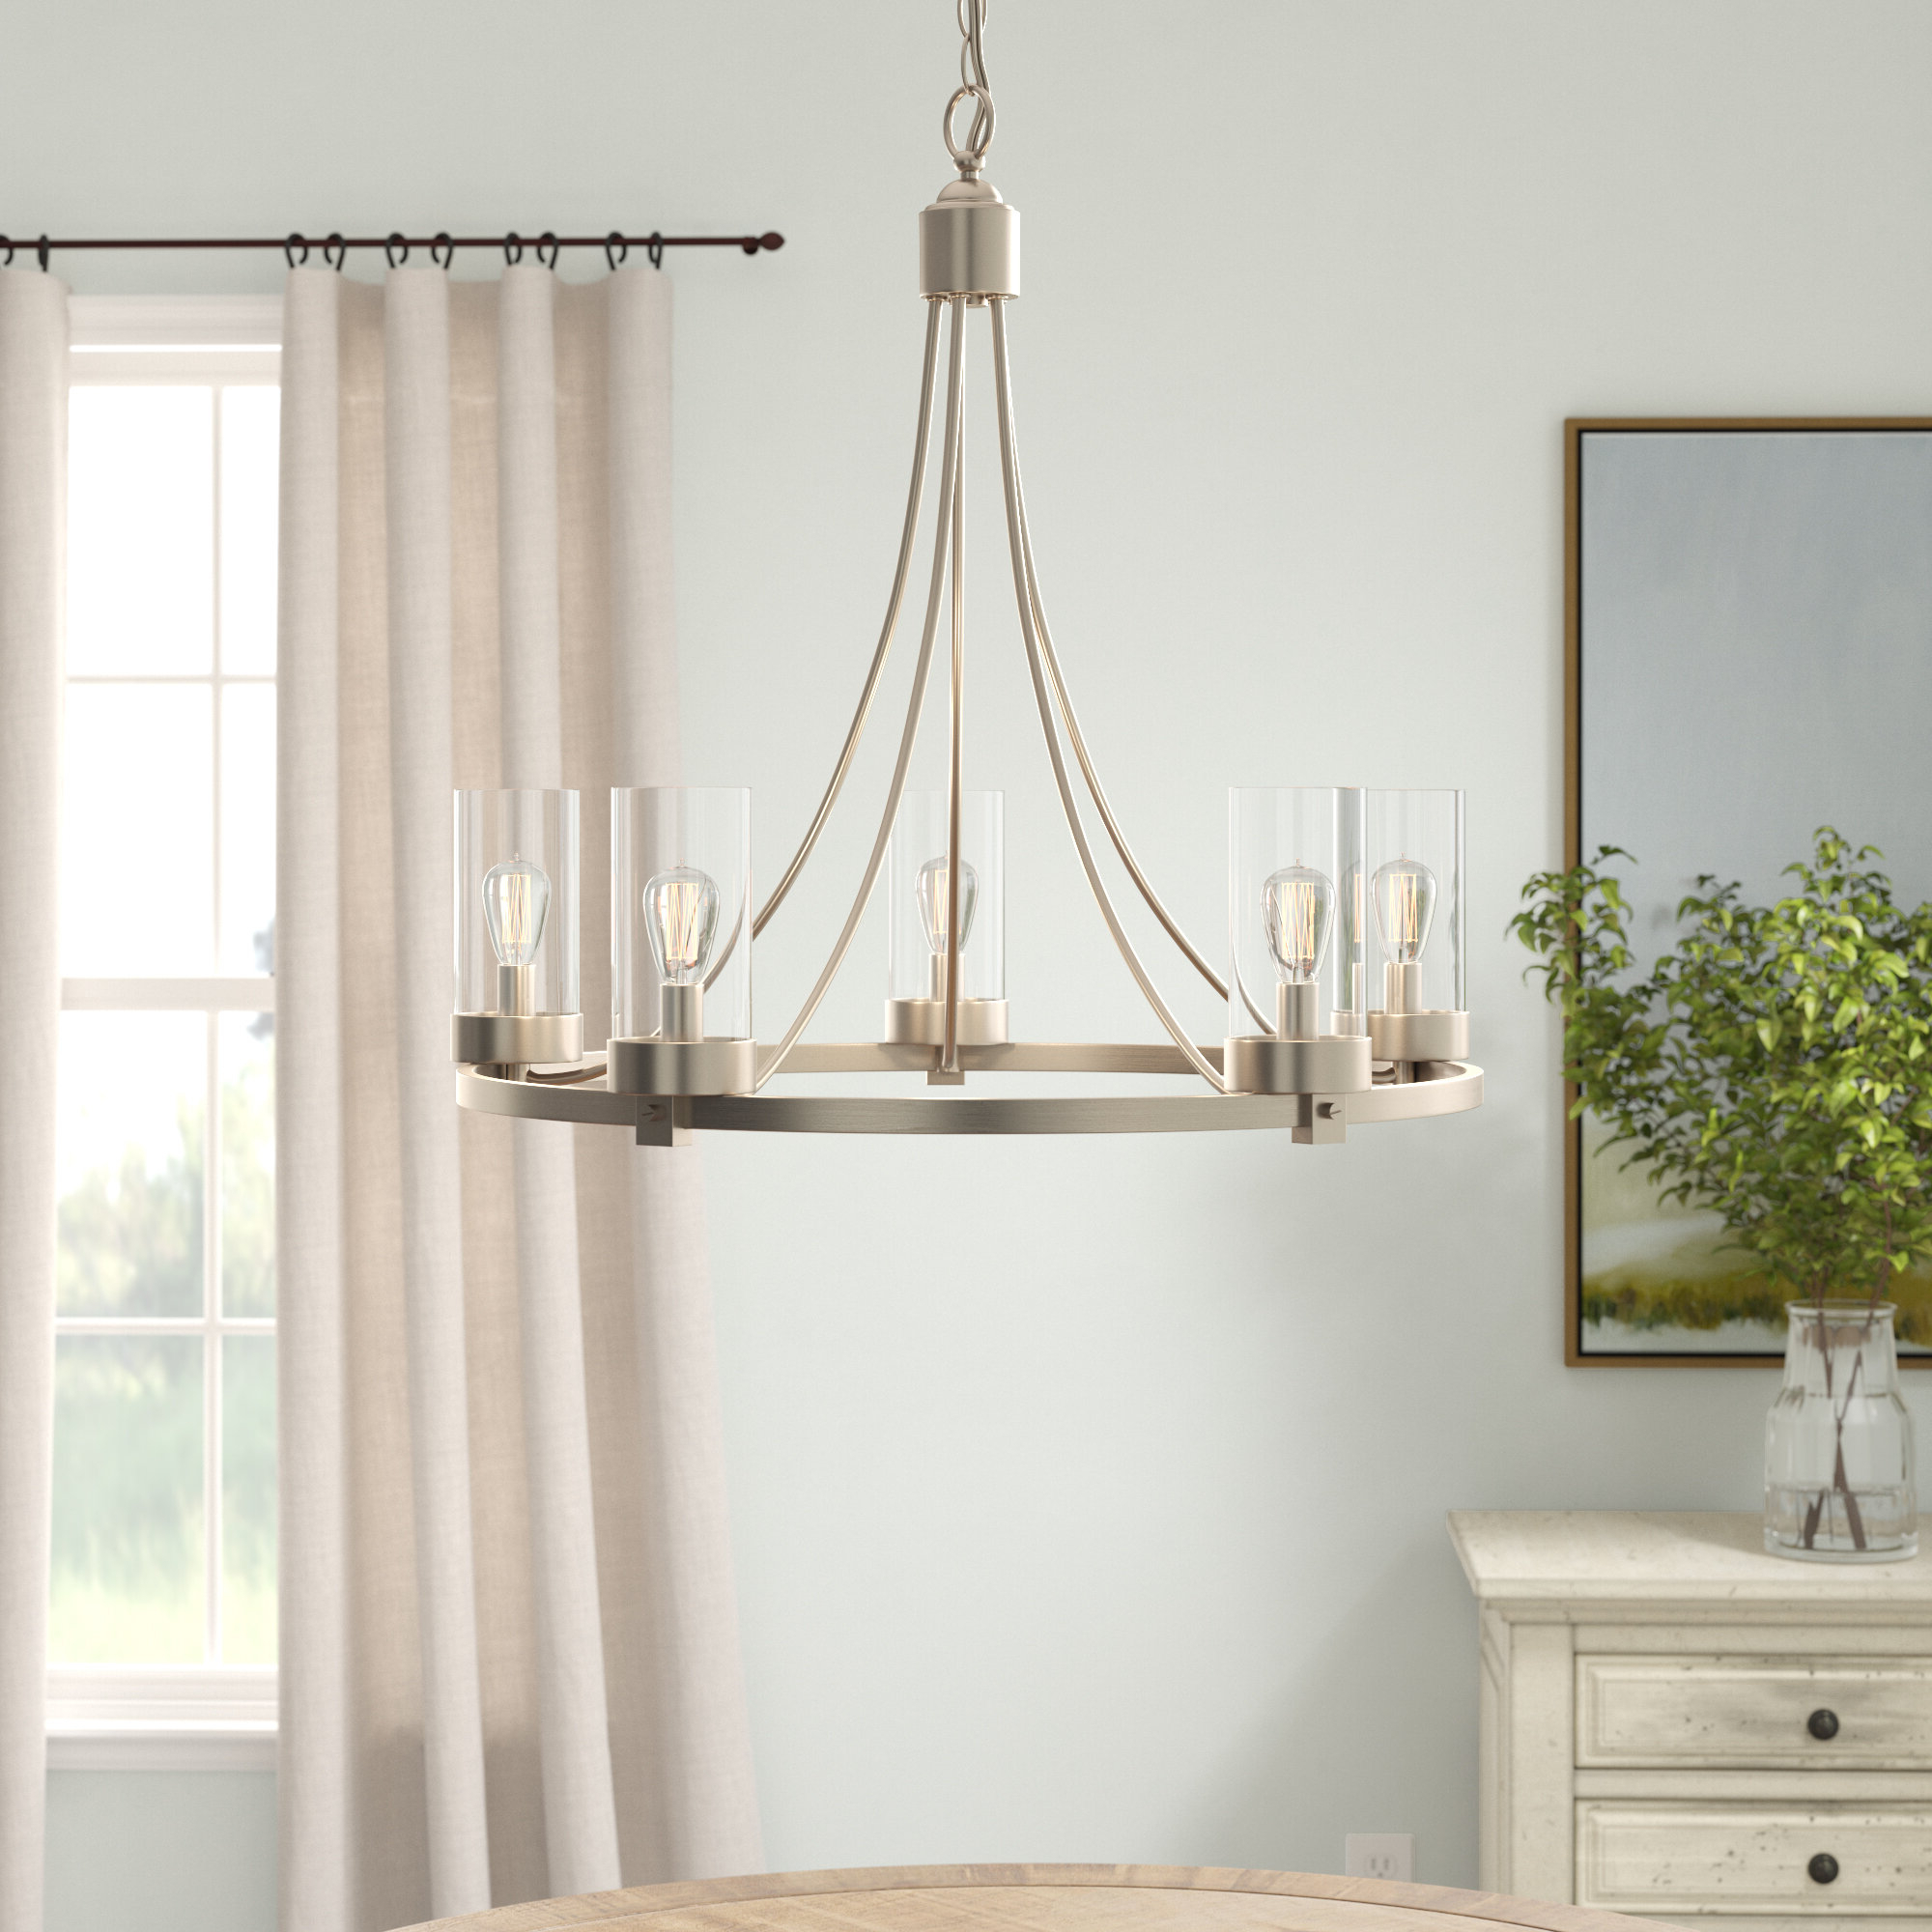 Newest Janette 5-Light Wagon Wheel Chandelier in Janette 5-Light Wagon Wheel Chandeliers